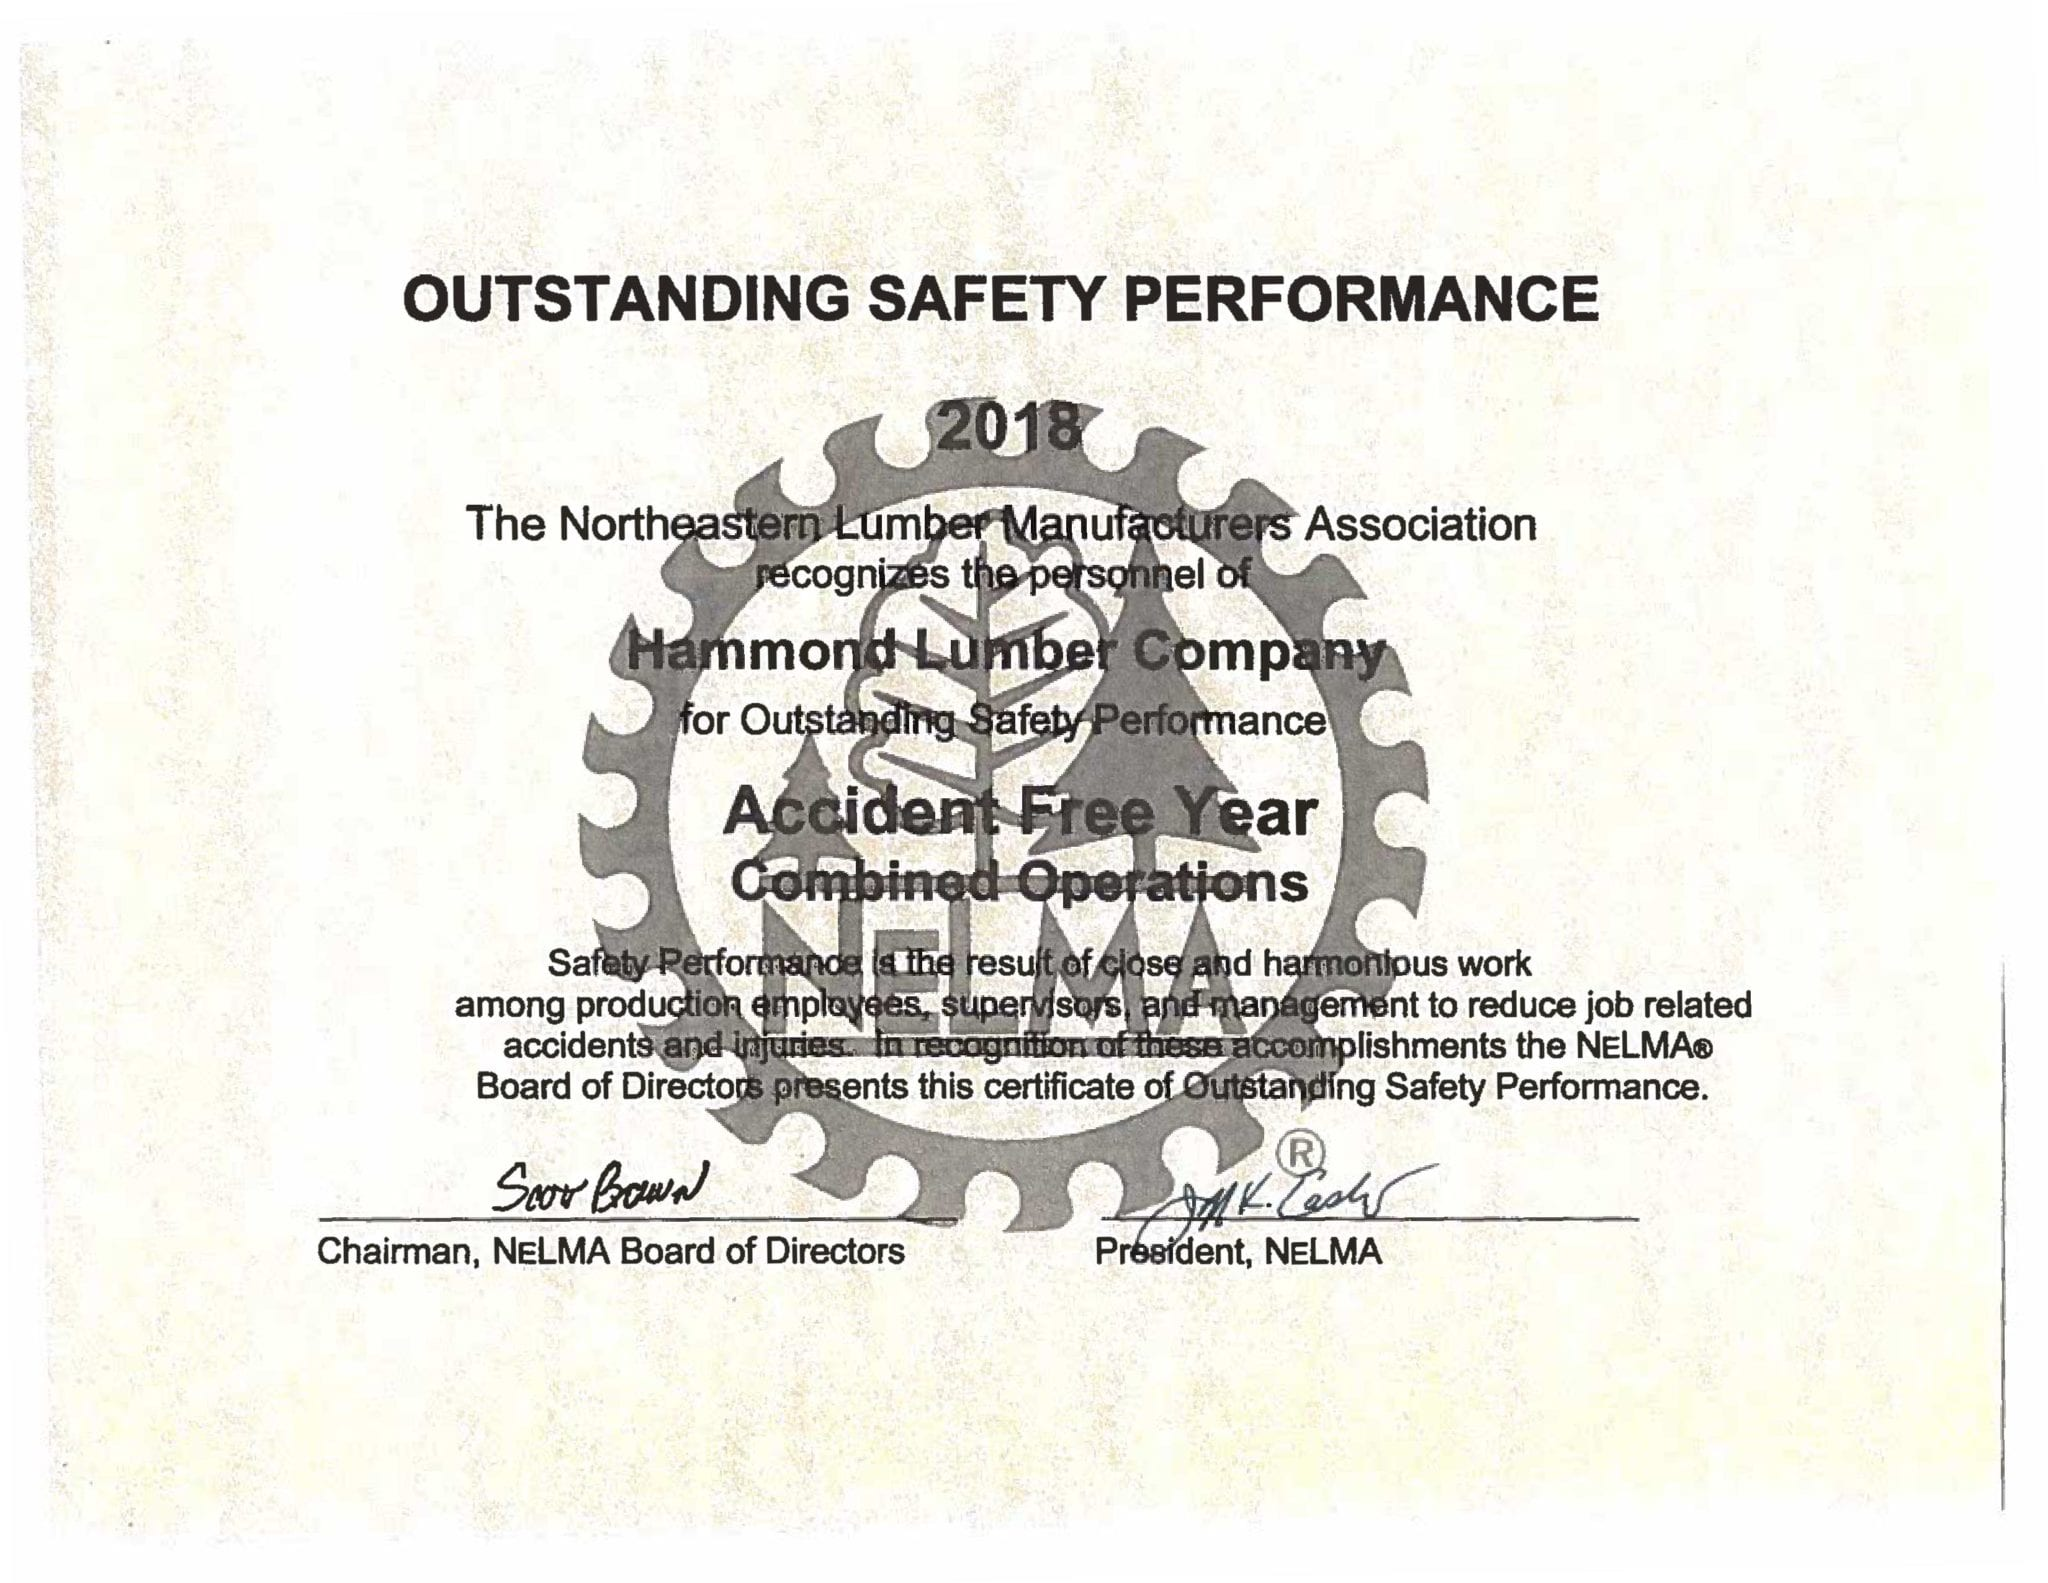 Combined Operations Award Certificate